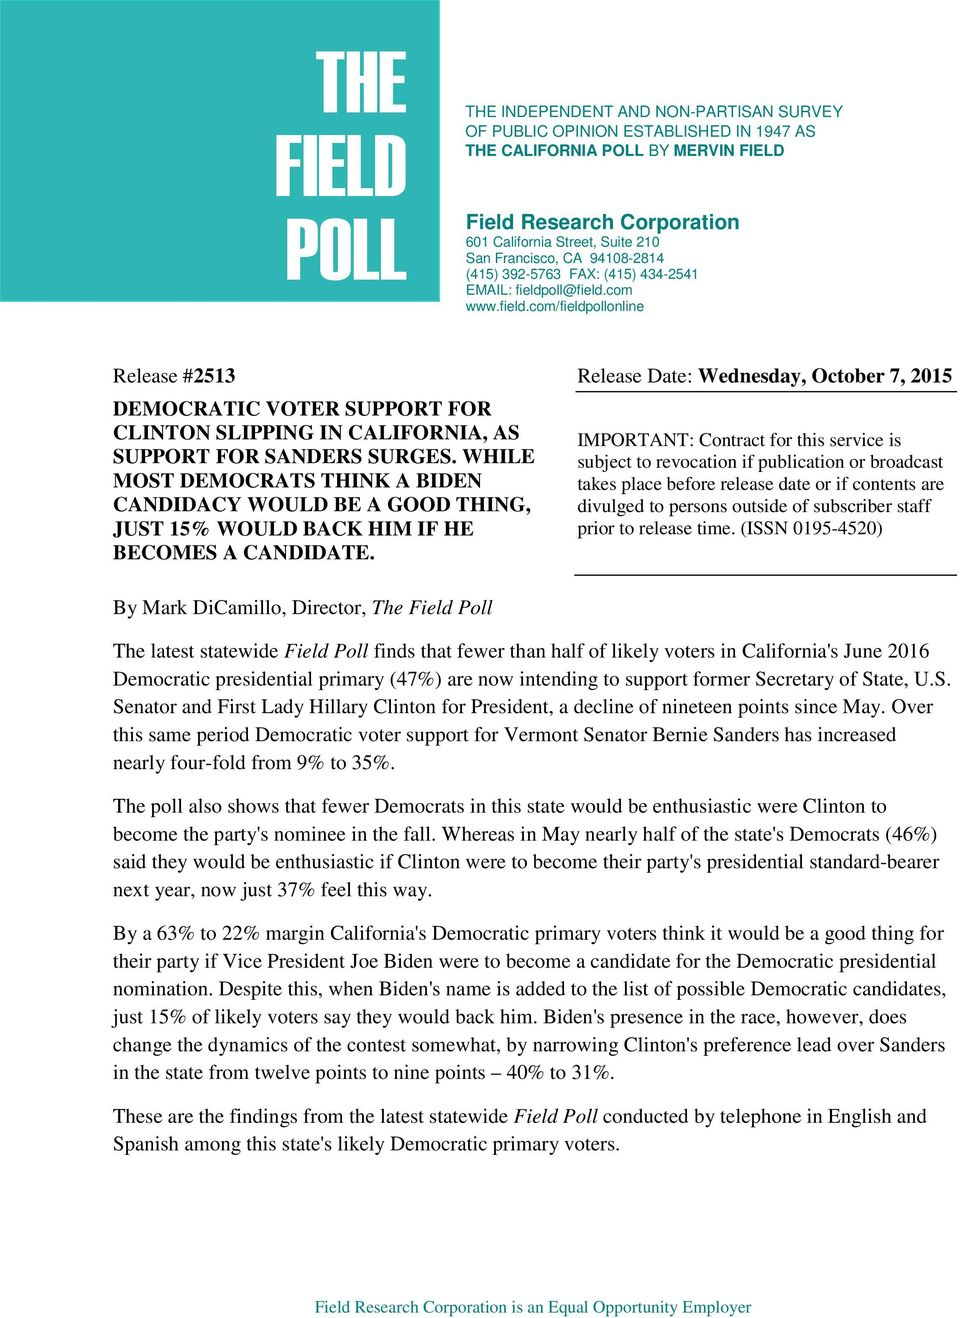 oll@field.com www.field.com/fieldpollonline Release #2513 Release Date: Wednesday, October 7, DEMOCRATIC VOTER SUPPORT FOR CLINTON SLIPPING IN CALIFORNIA, AS SUPPORT FOR SANDERS SURGES.